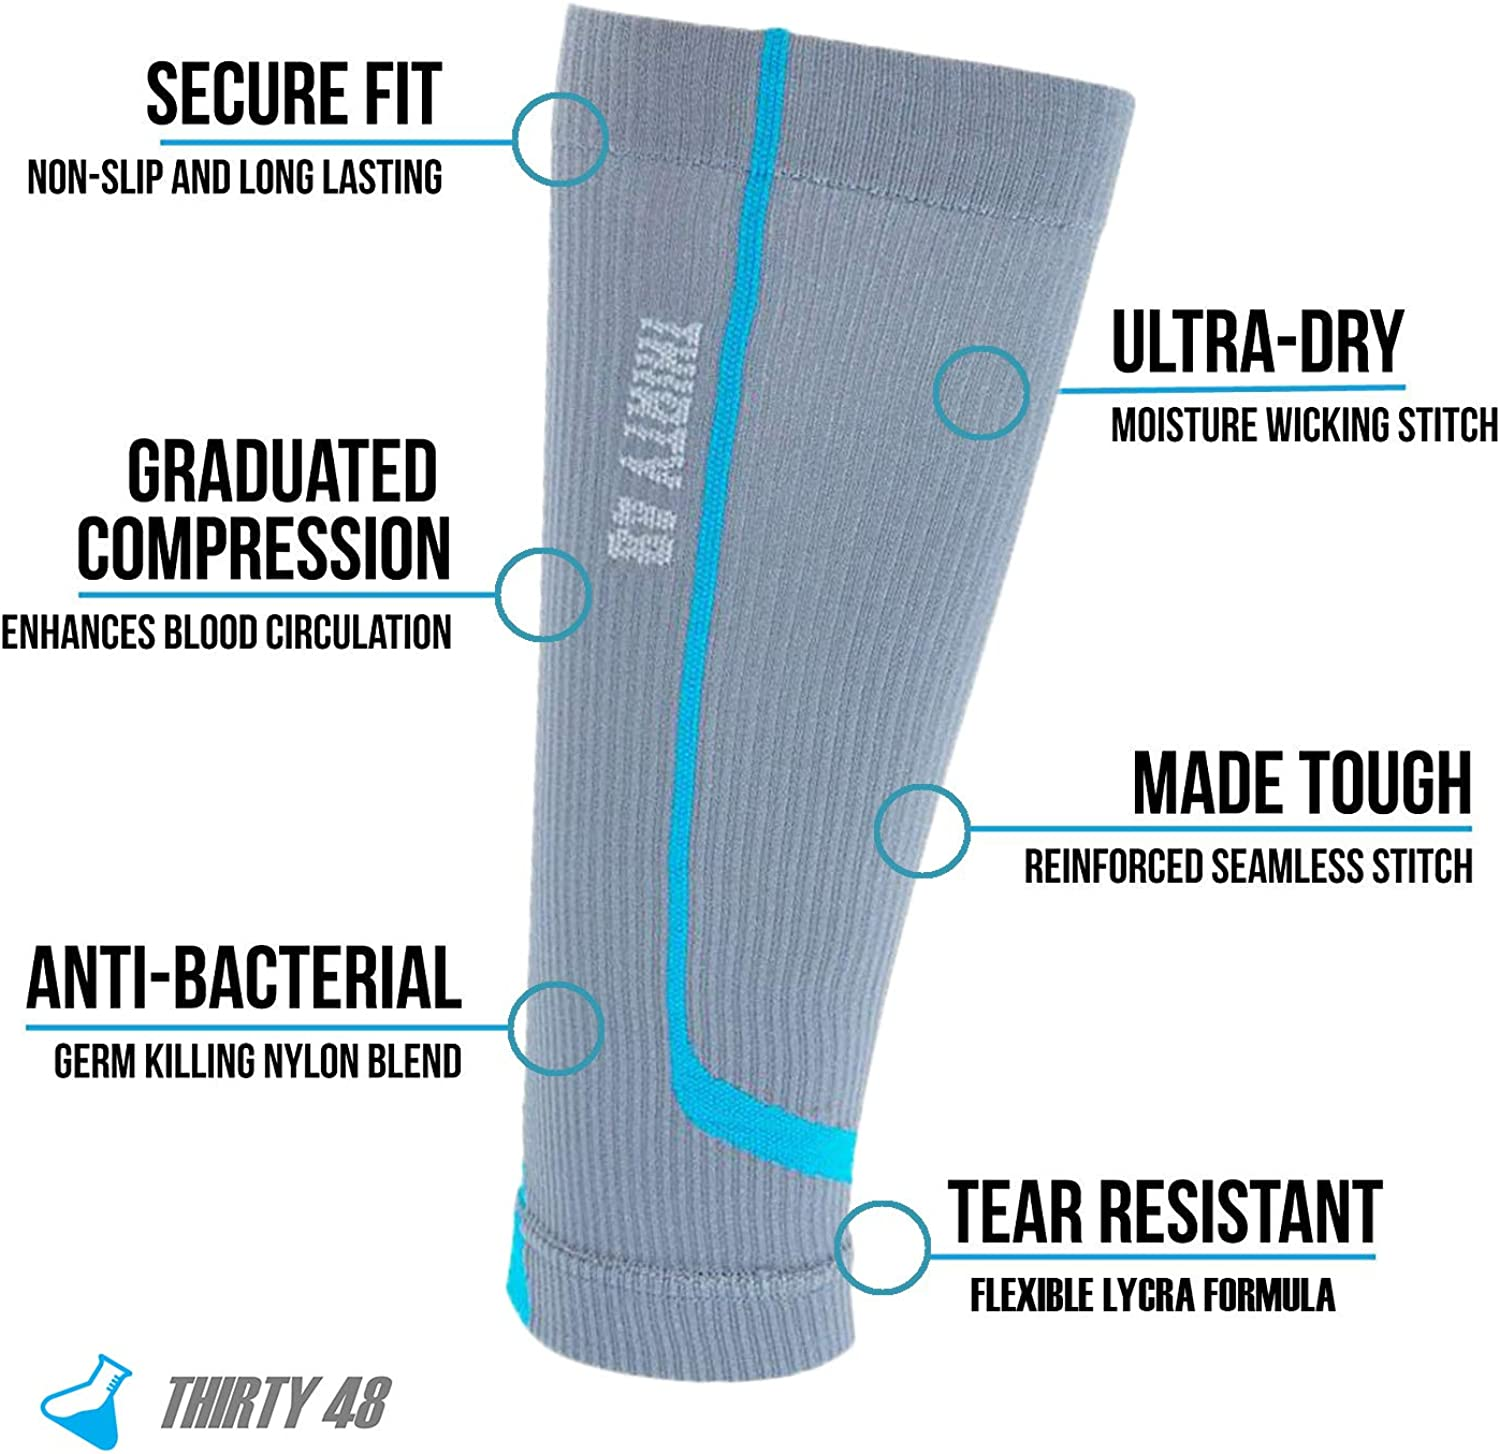 Maximize Fast Recovery by Increasing Oxygen to Muscles Graduated Calf Compression Sleeves by Thirty48 15-20 OR 20-30 mmHg